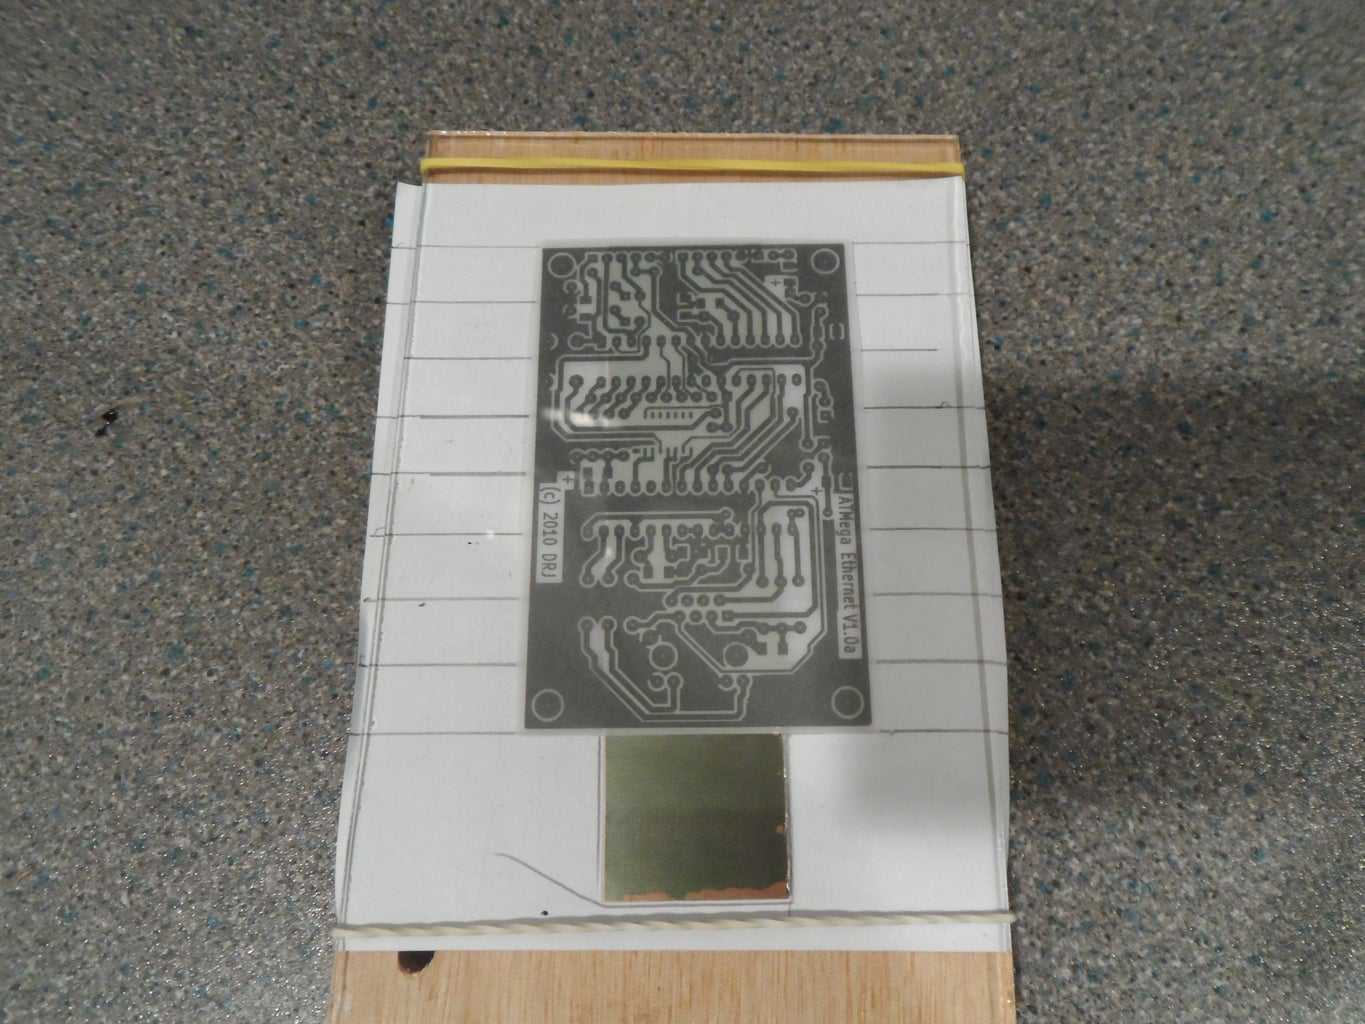 Calibrate the Etching Time